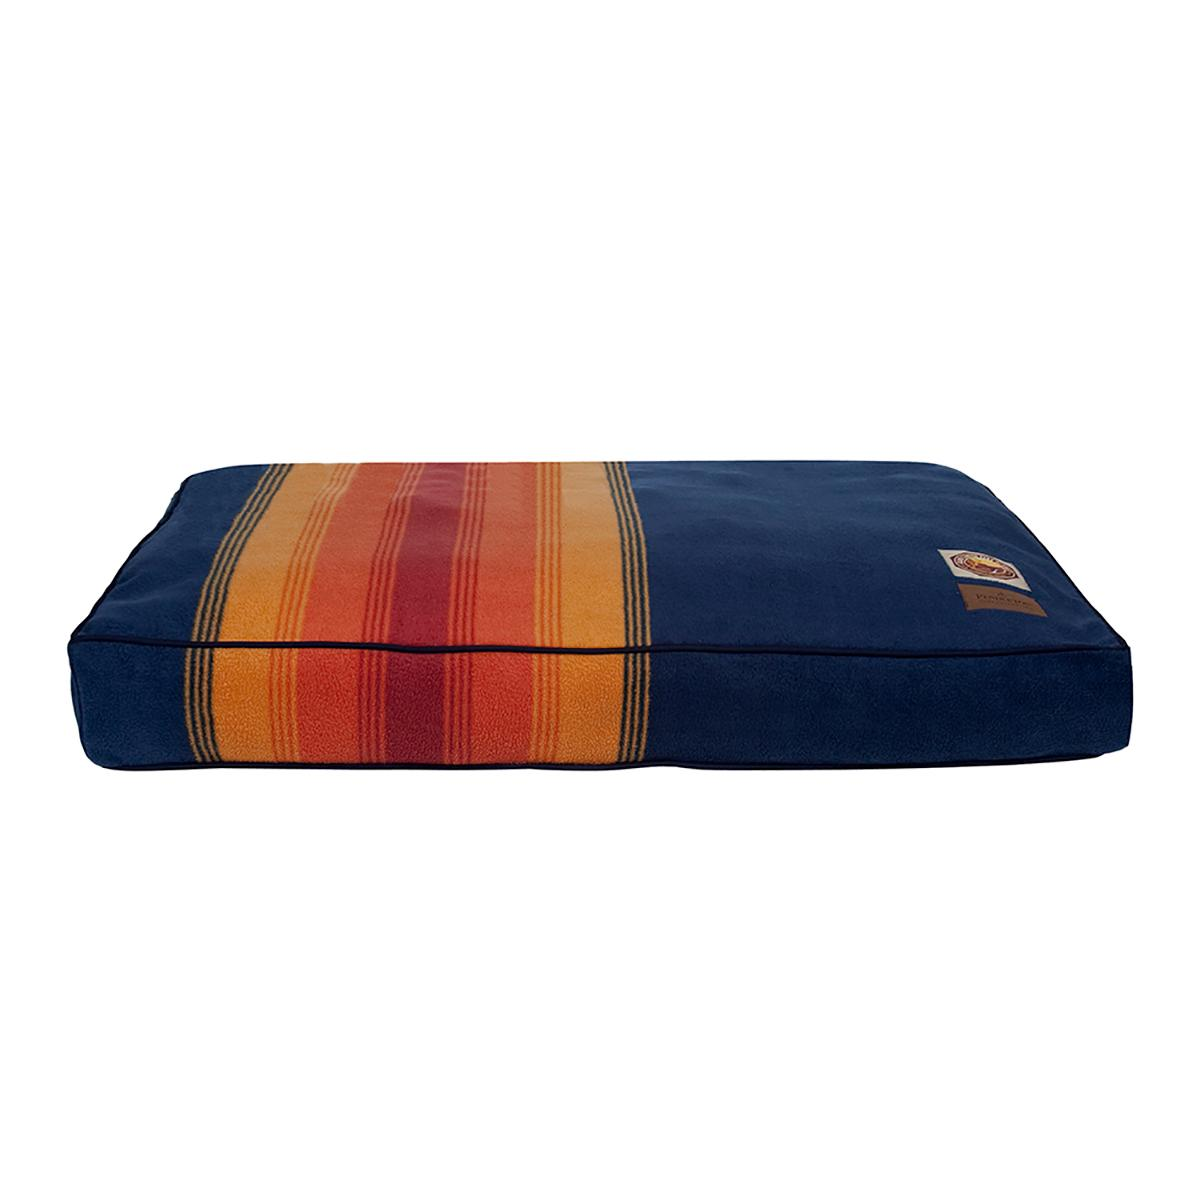 Pendleton Grand Canyon National Park Dog Bed - Navy Blue